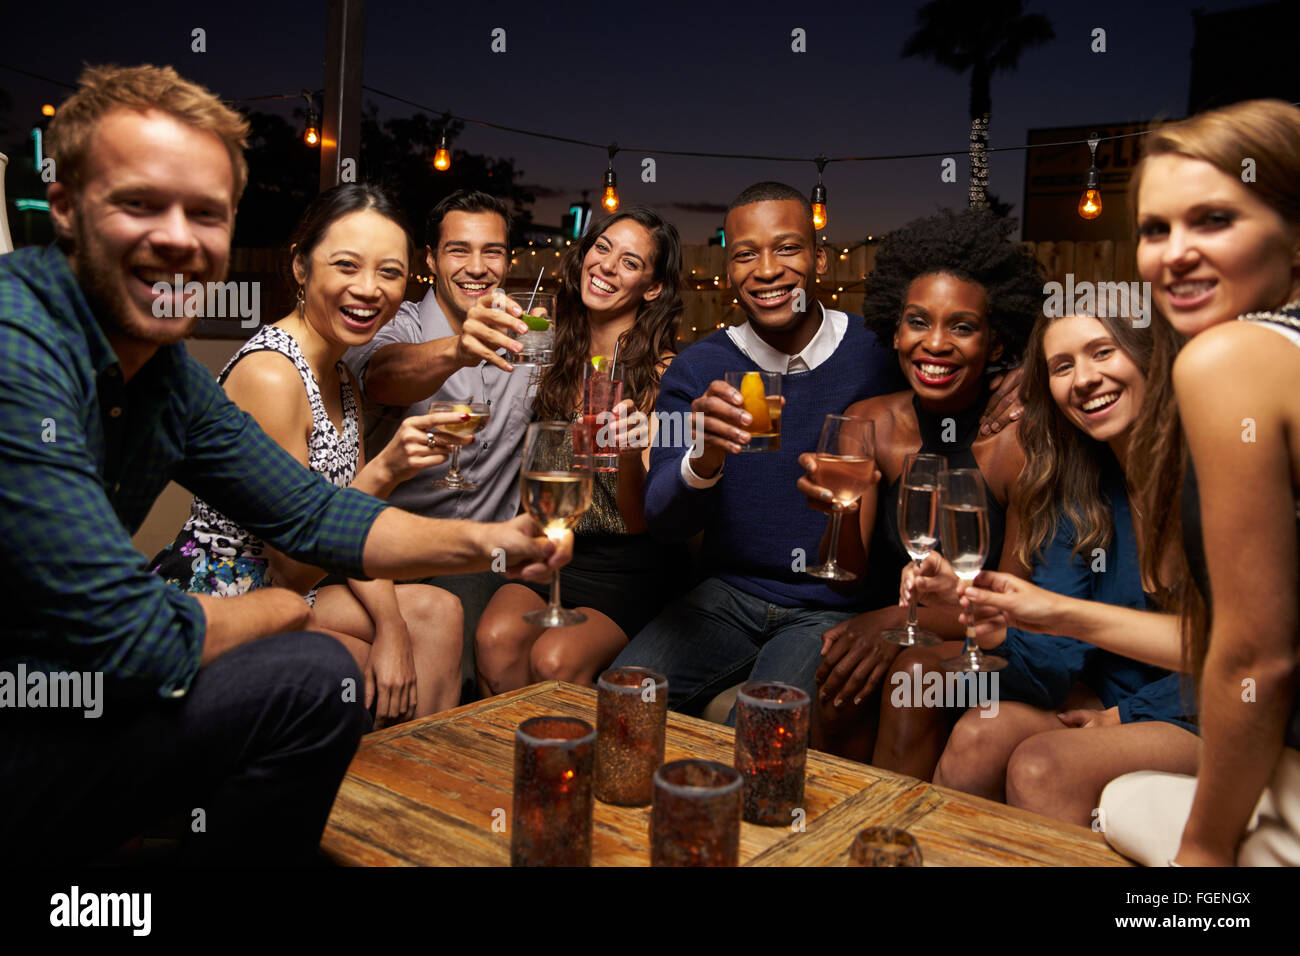 portrait-of-friends-enjoying-night-out-a